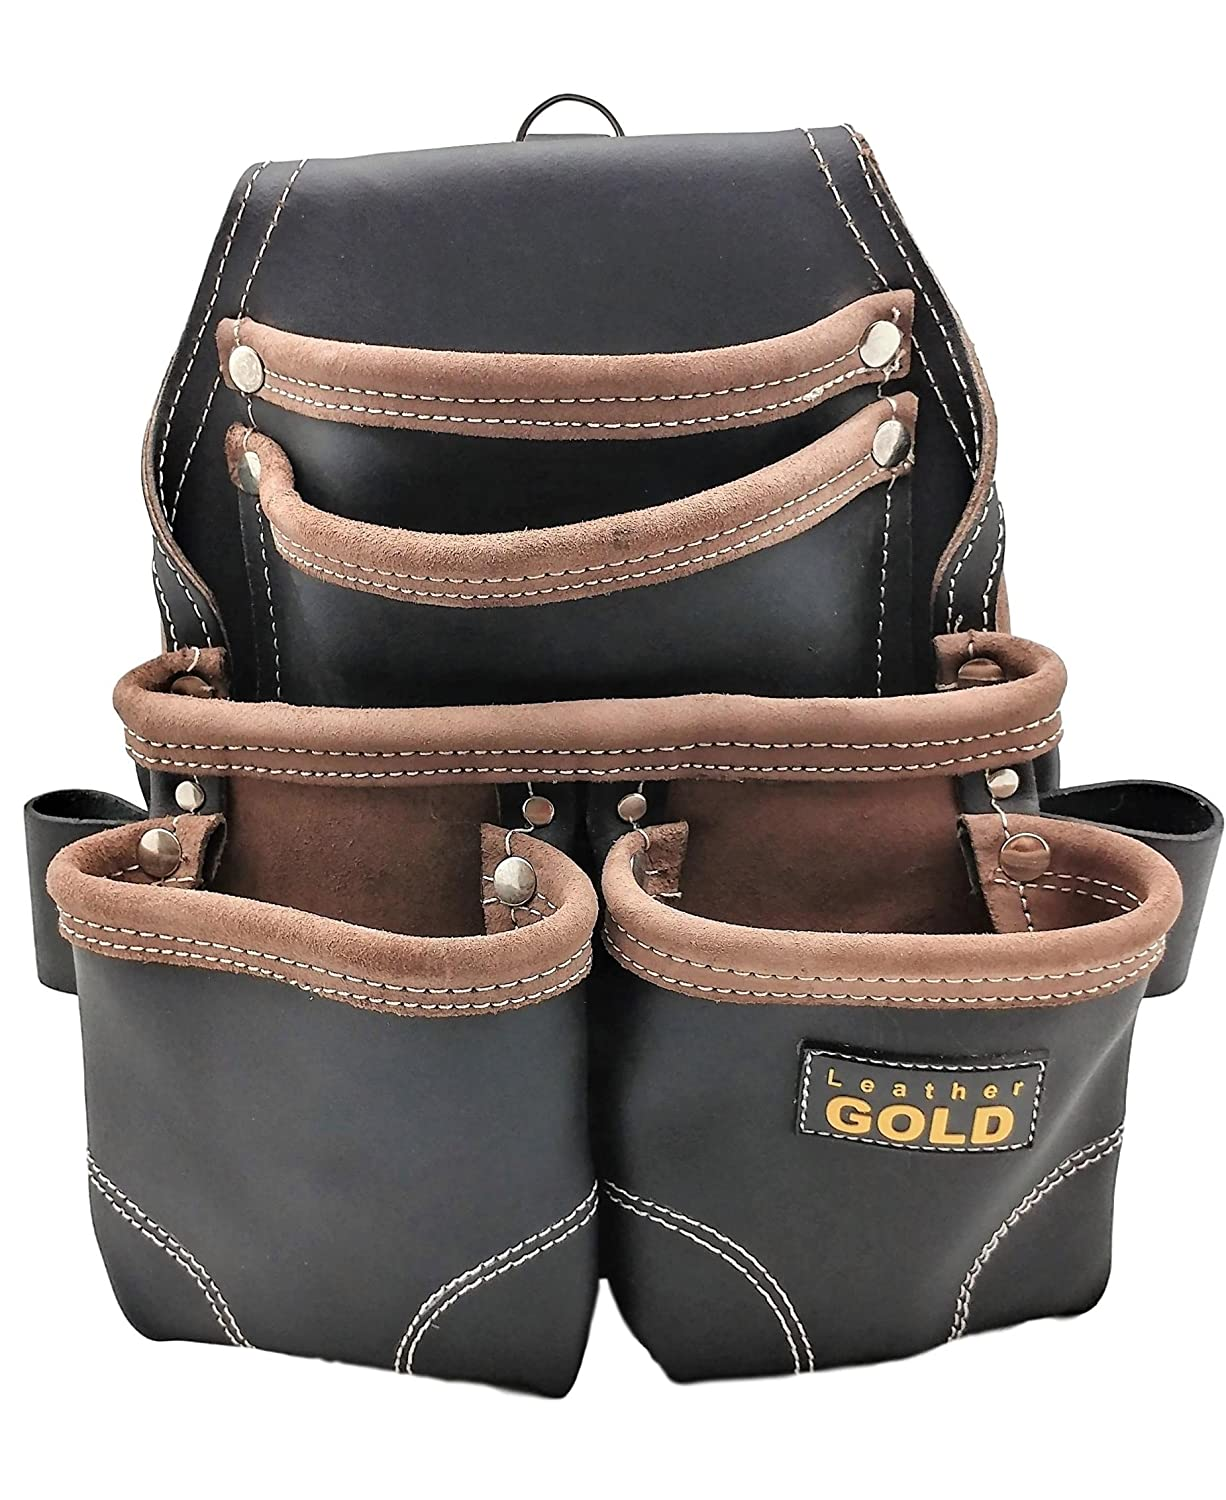 Leather Gold Nail Pouch | Leather Tool Pouch 3150DP 5 Pockets Black Oil Tanned Leather Heavy Duty Carpenter Tool Belt With Reinforced Seams and 2 Hammer Holders